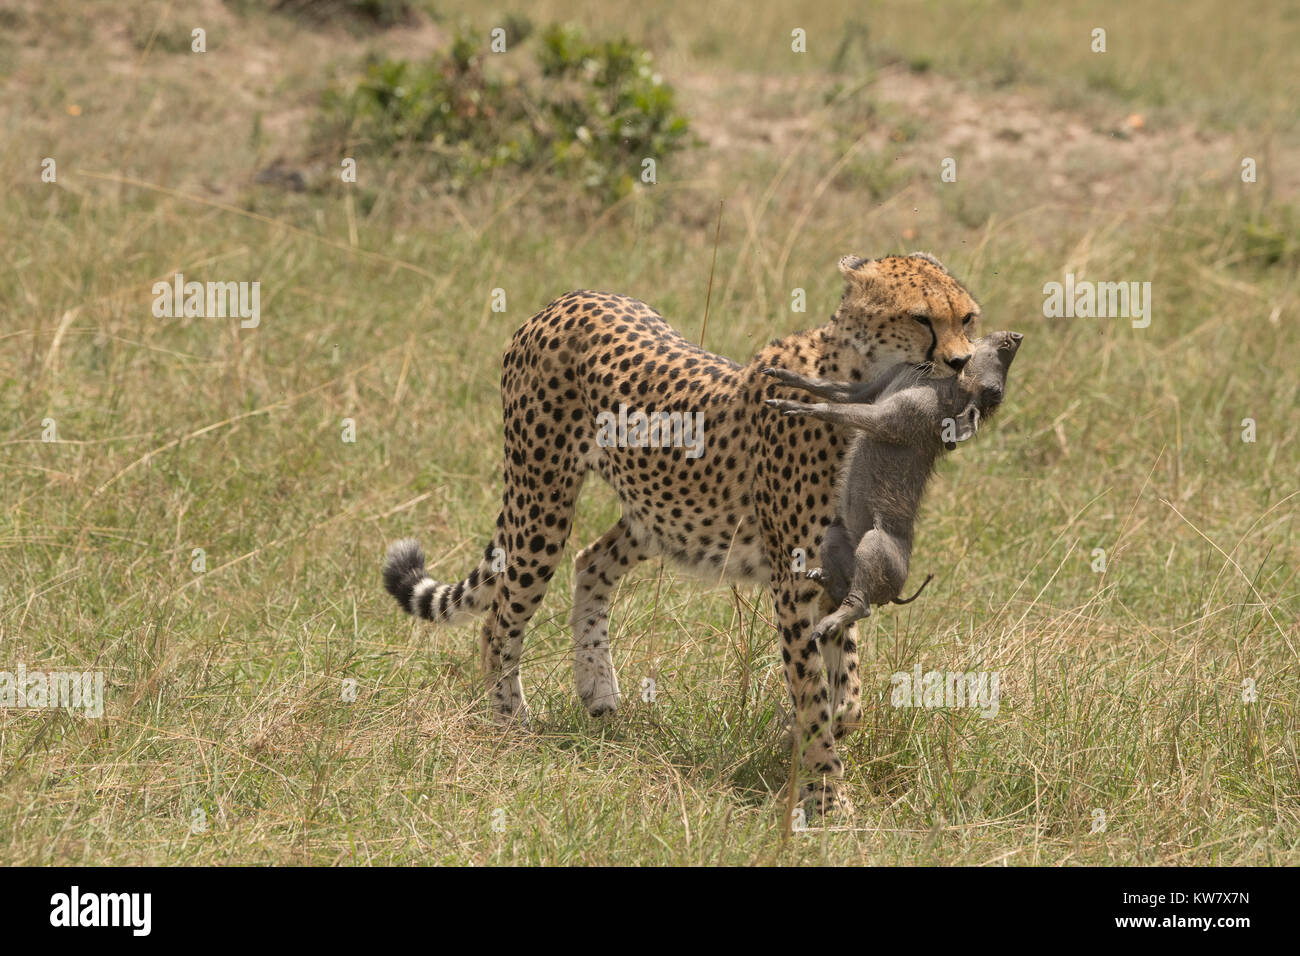 Cheetah (Acinonyx jubatus) cub carrying a baby warthog (Phacochoerus africans) just after catching it - Stock Image